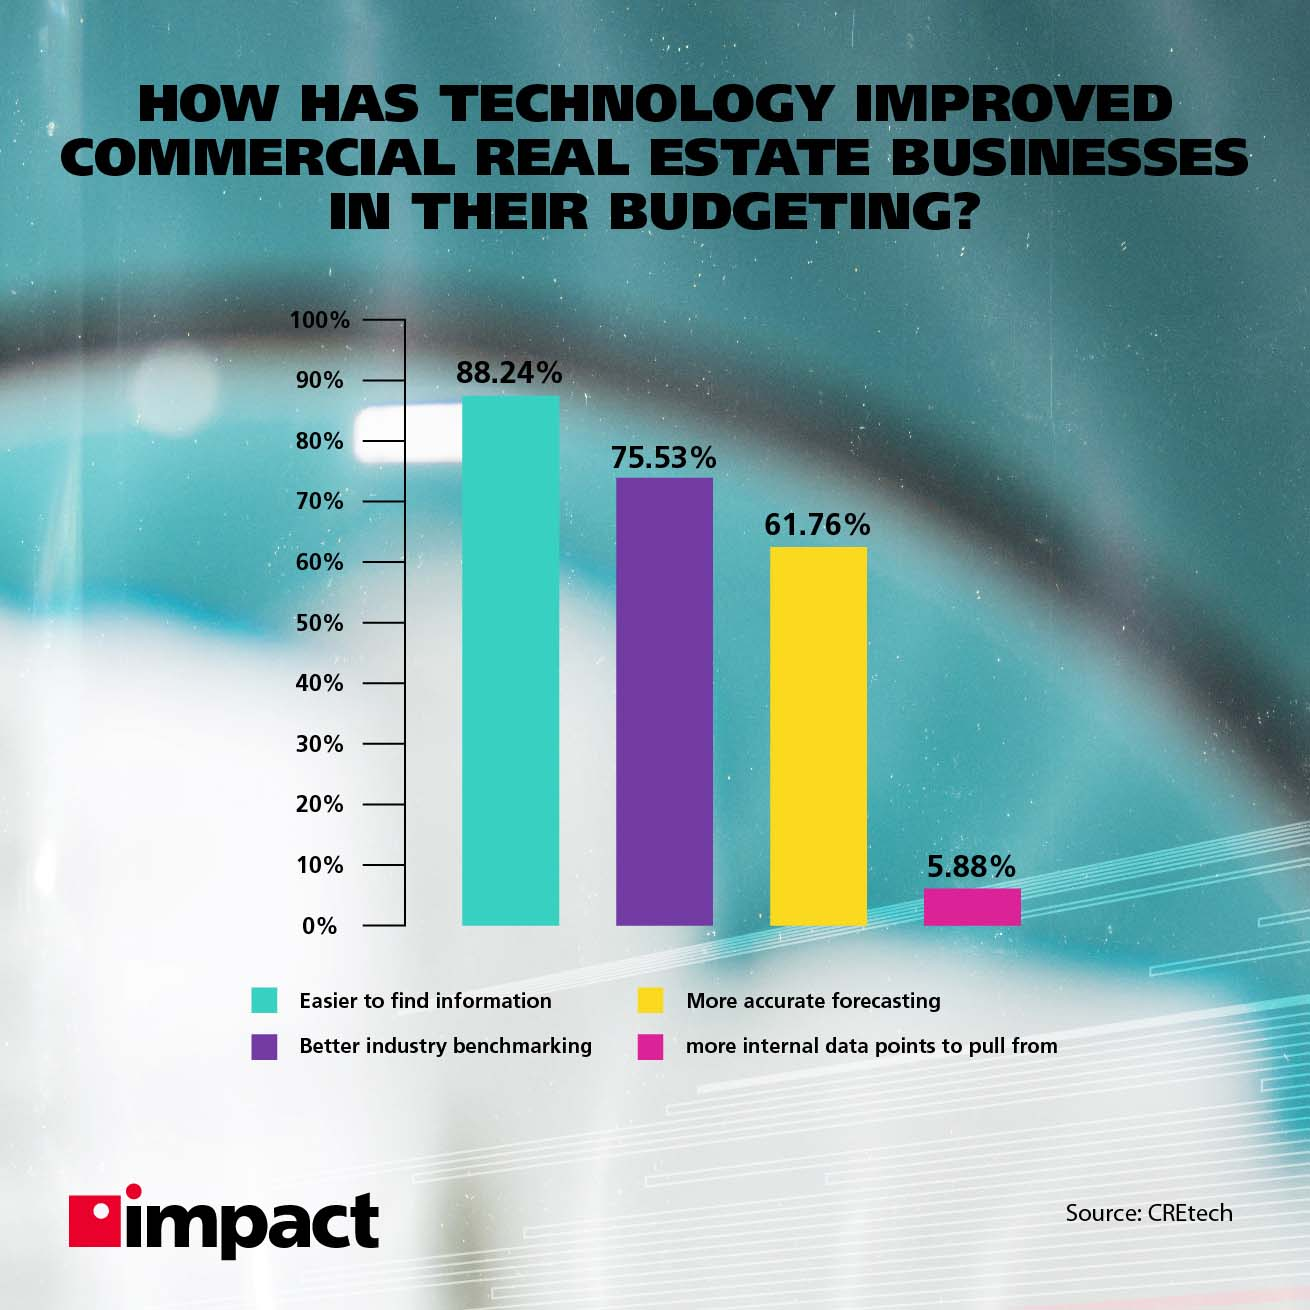 Bar graph on how technology has improved commercial real estate